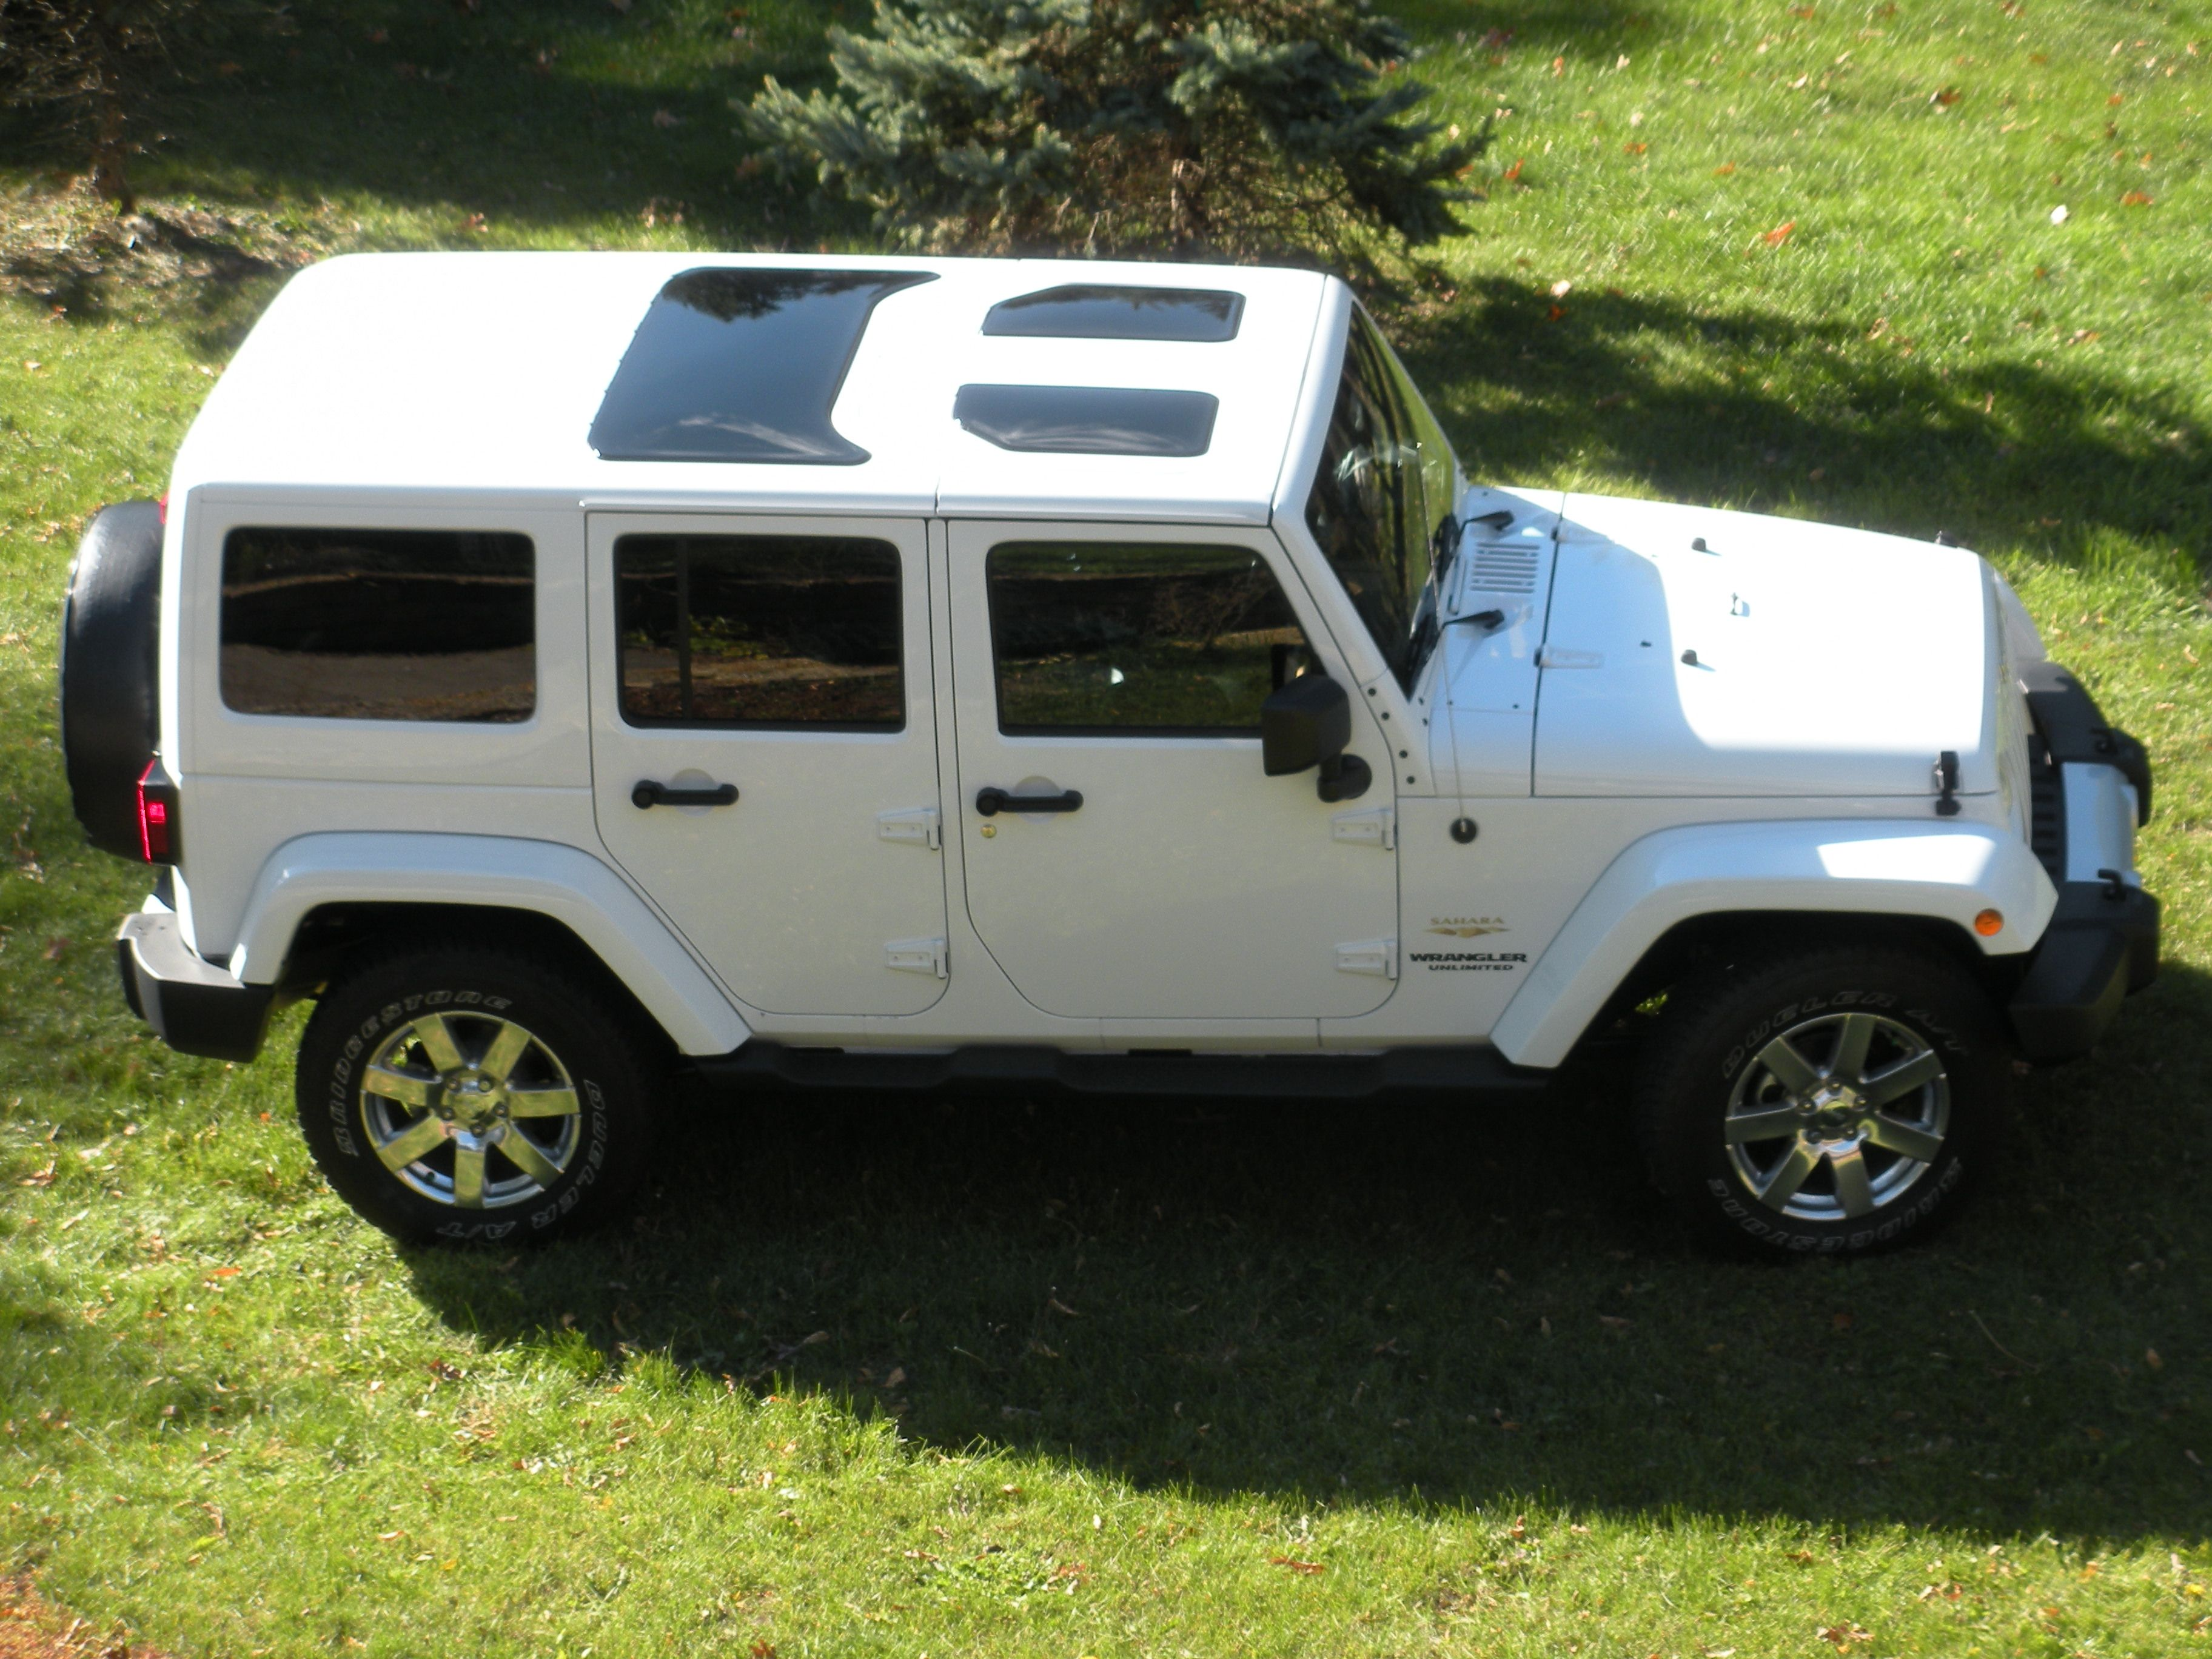 White jeep wrangler jk hard top glass inserts sunroofs want for mine